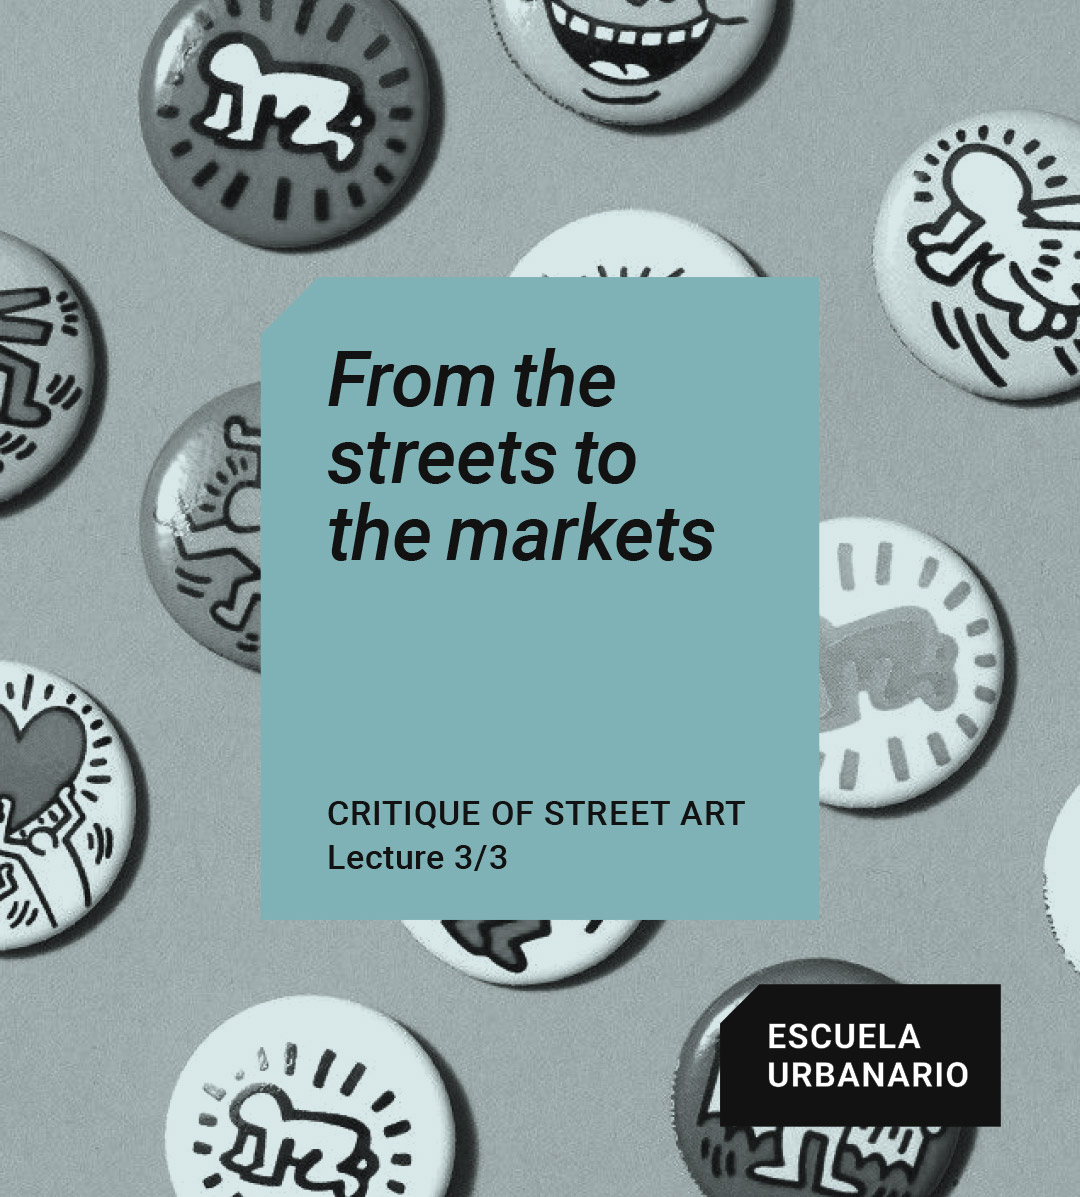 From the street to the markets - Urbanario School